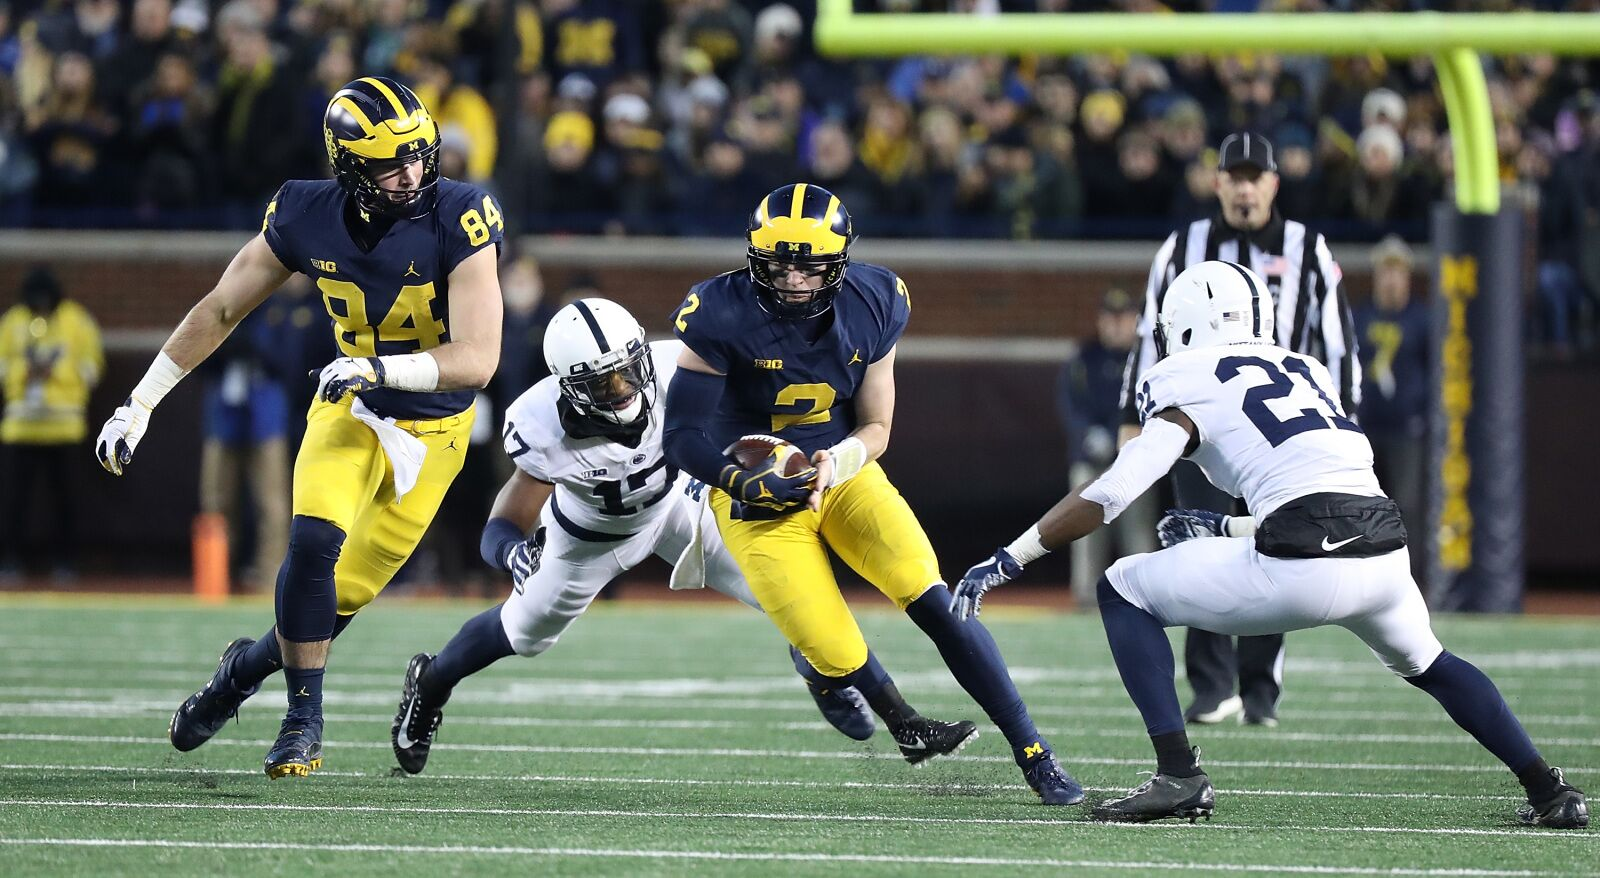 Michigan Football: How new offense helps Wolverines defense too